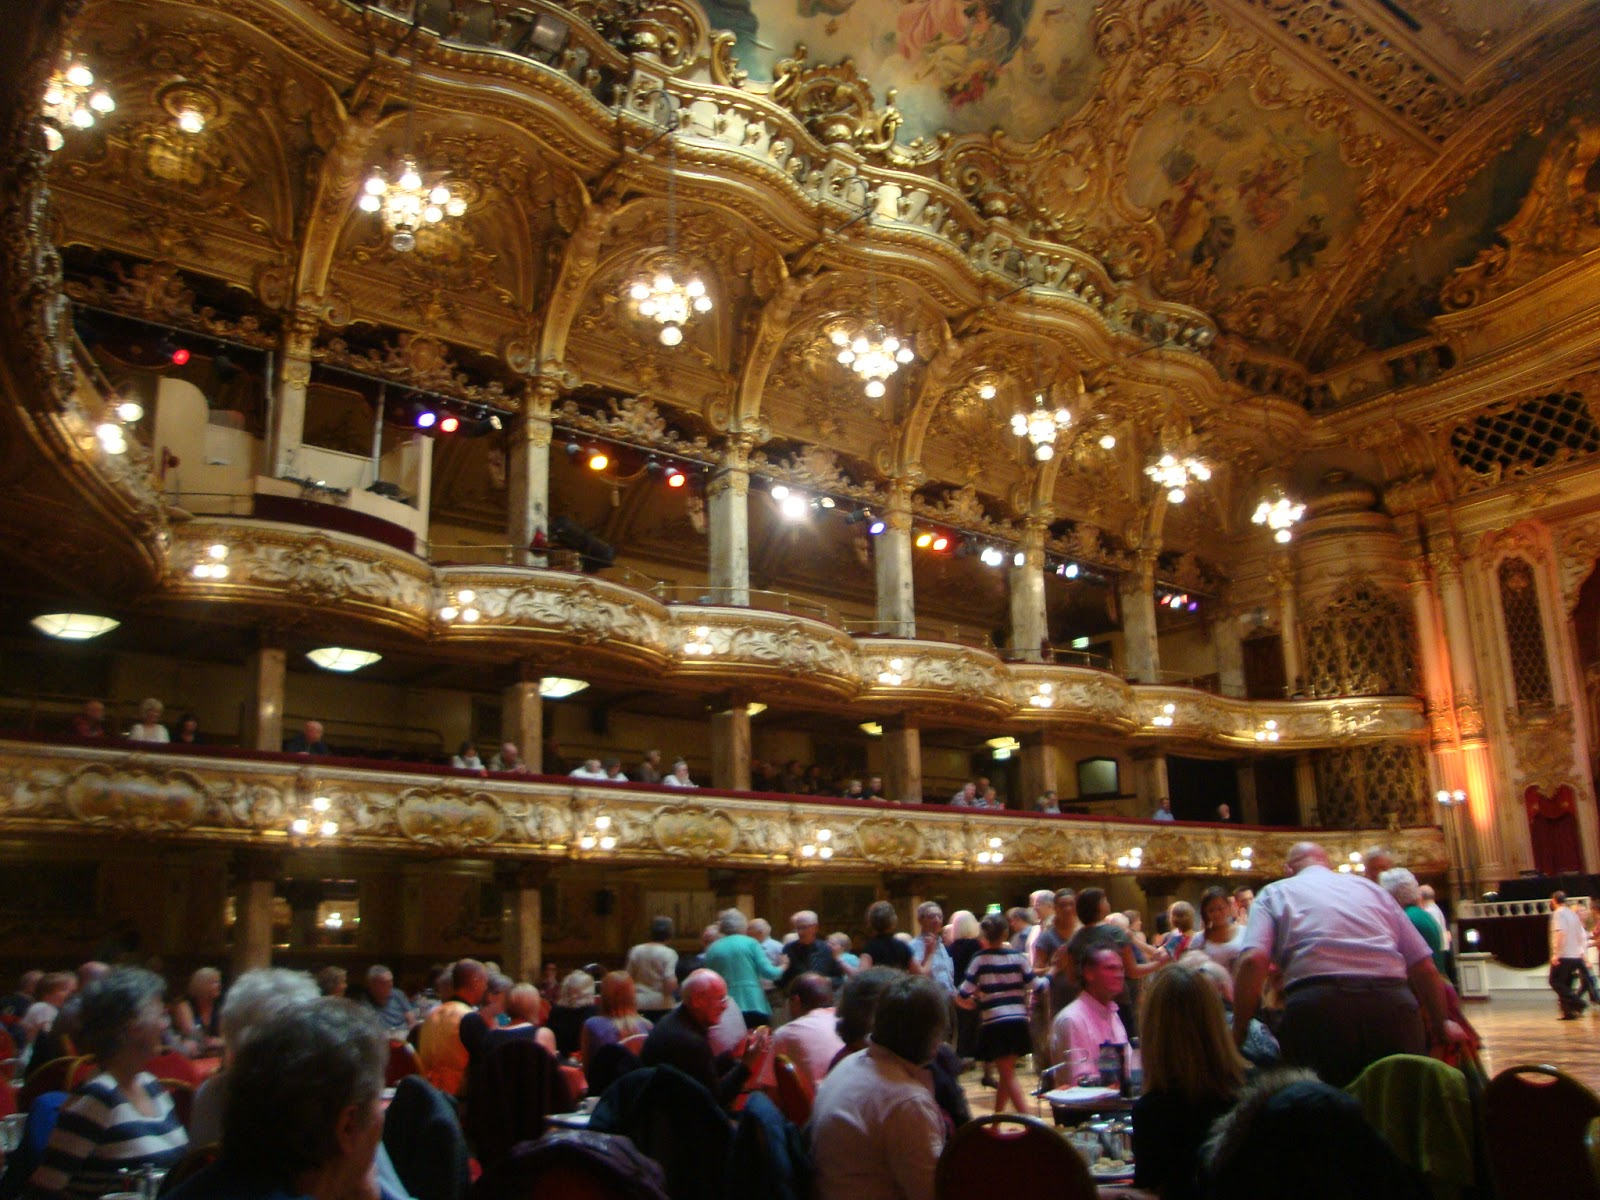 blackpool tower ballroom wallpapers - photo #43